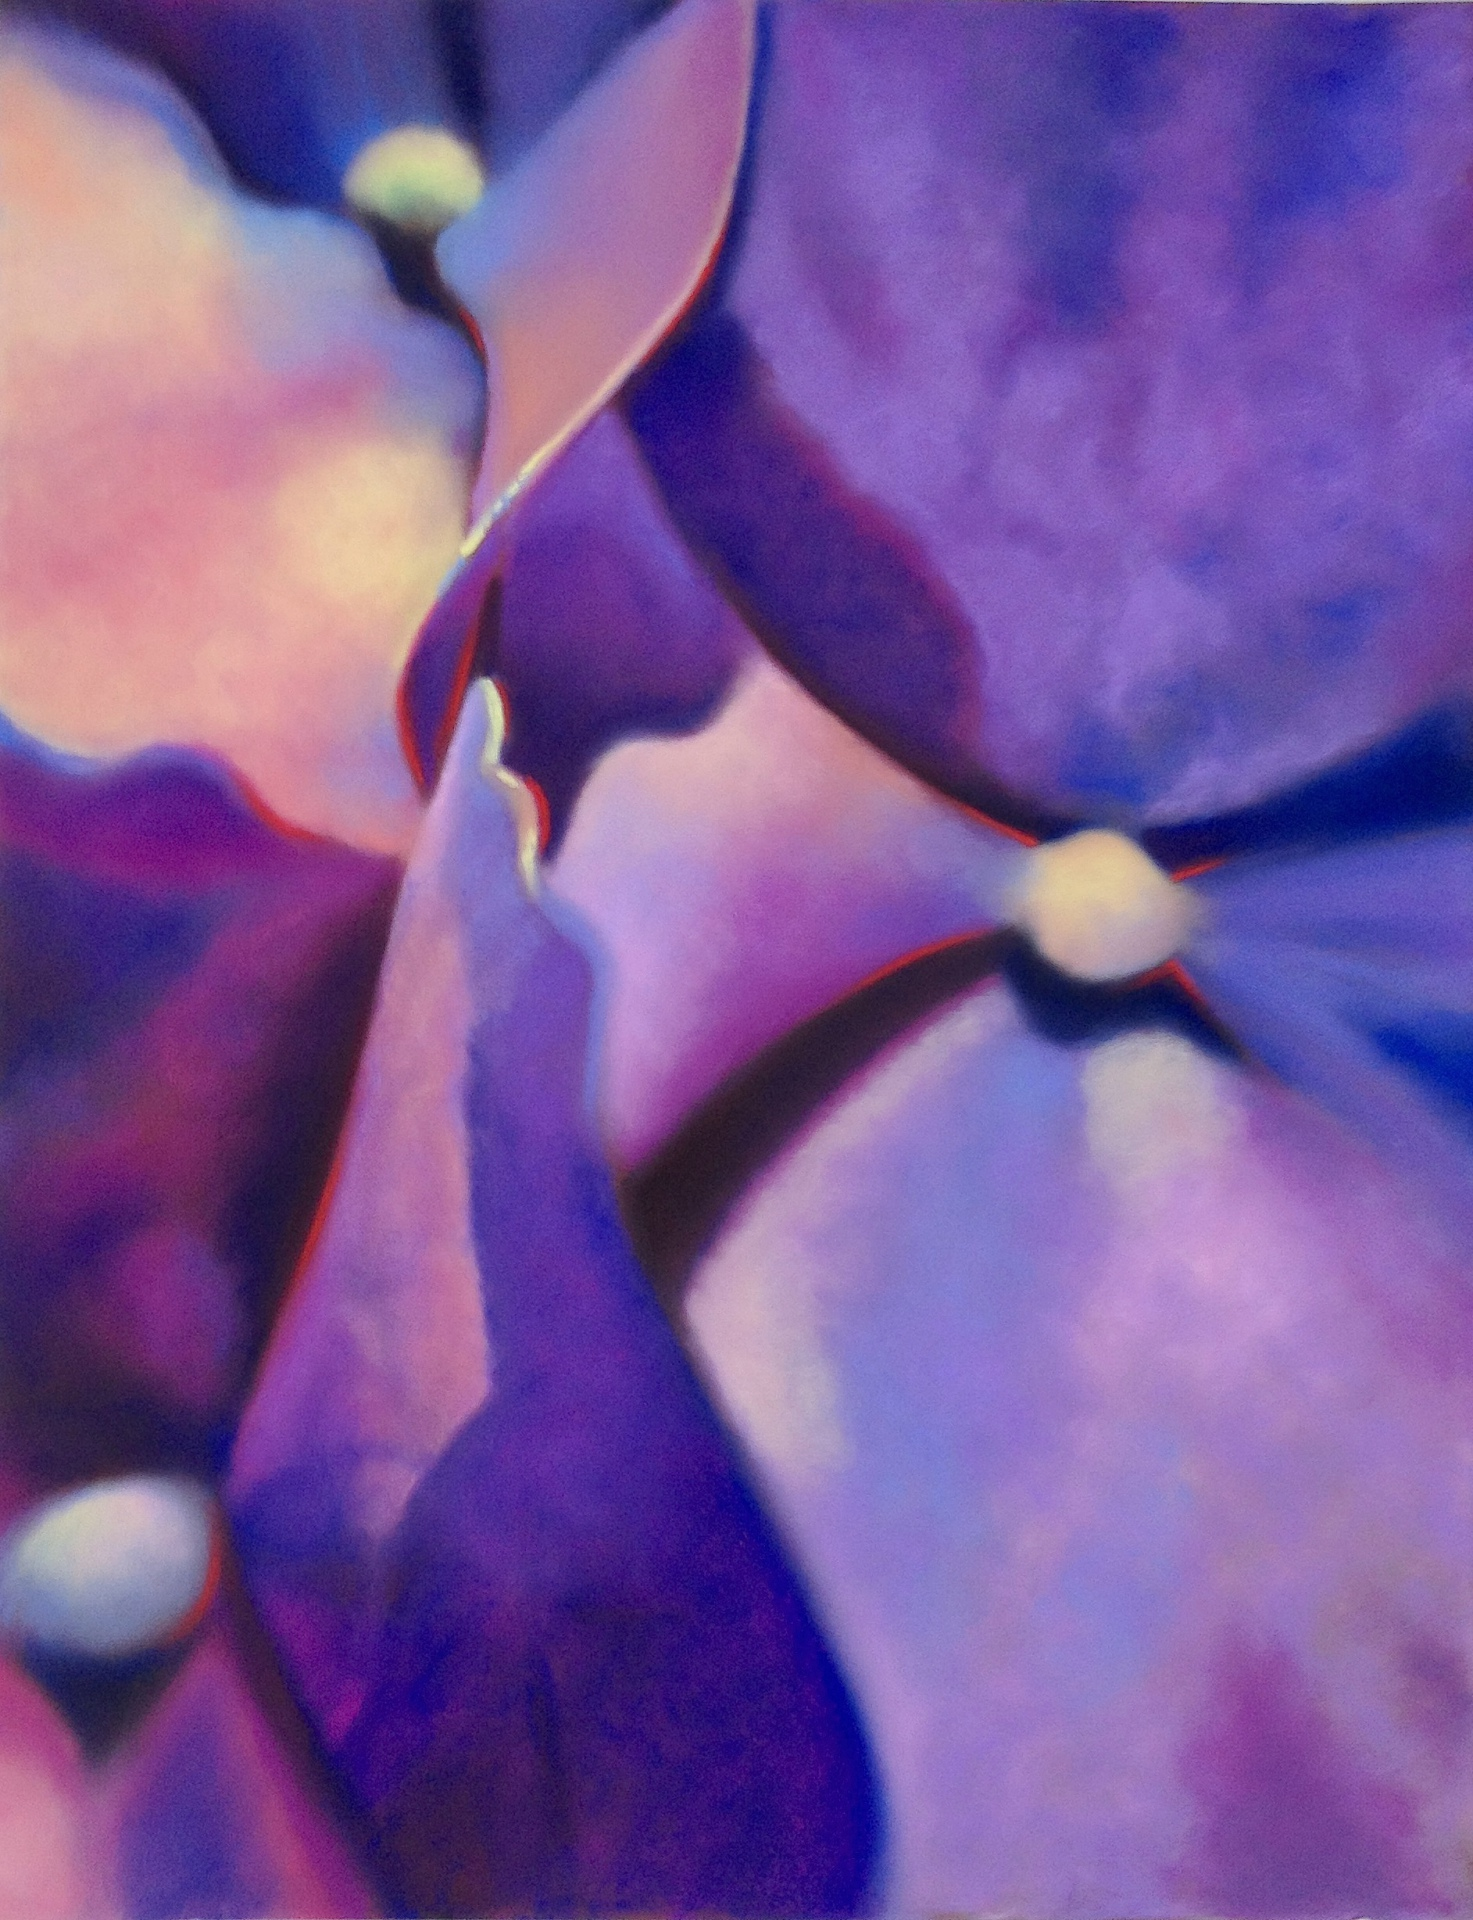 hydrangea abstract #1